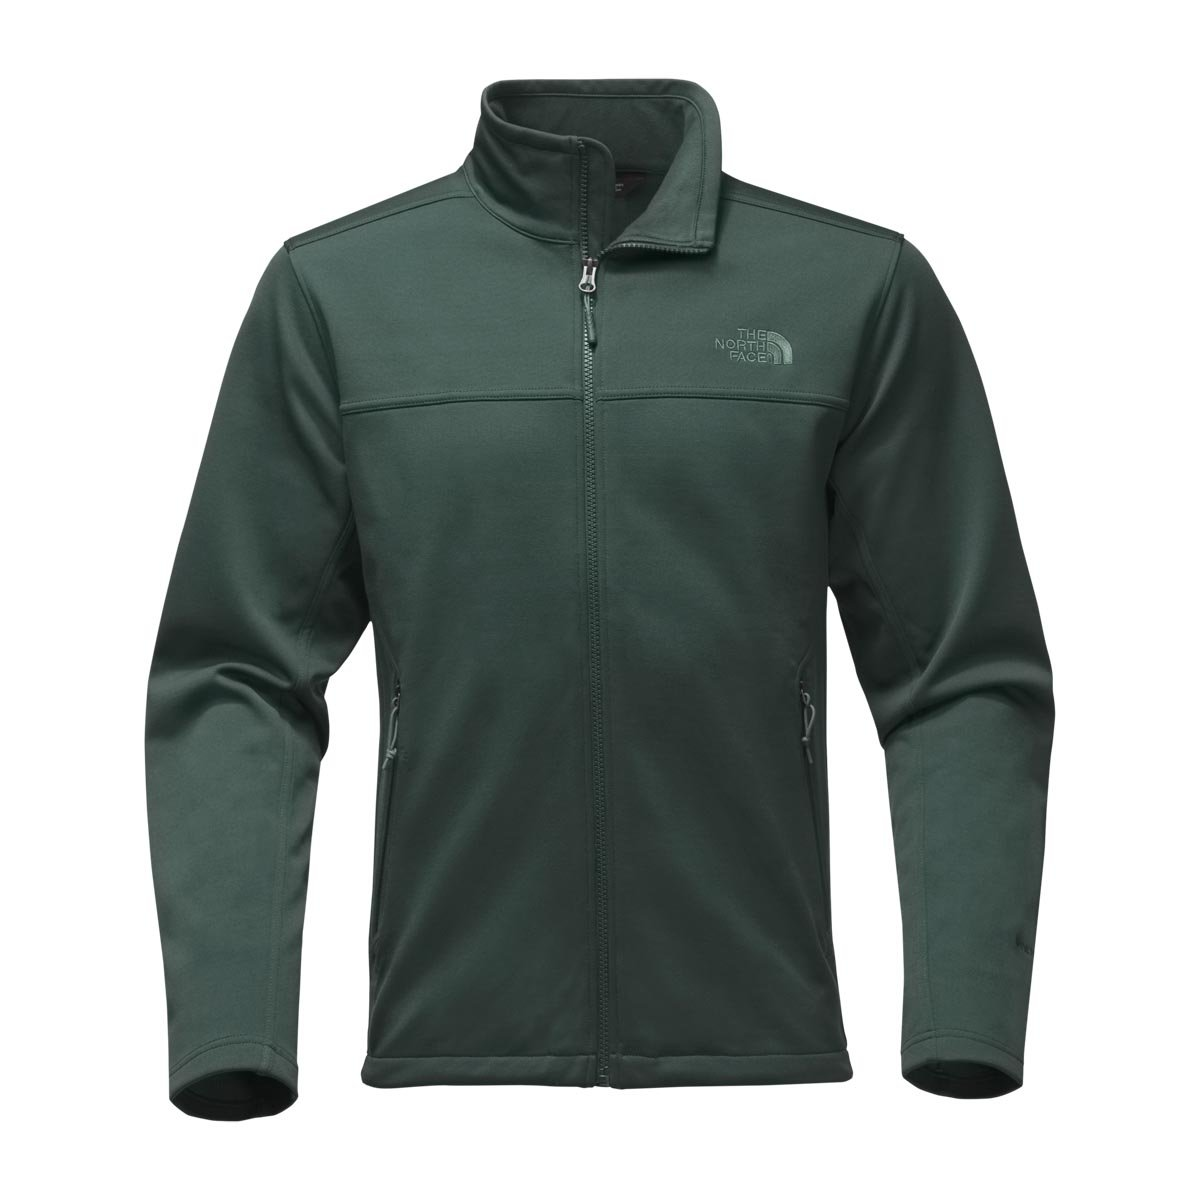 The North Face Men's Apex Canyonwall Jacket - Darkest Spruce/Darkest Spruce - L (Past Season) by The North Face